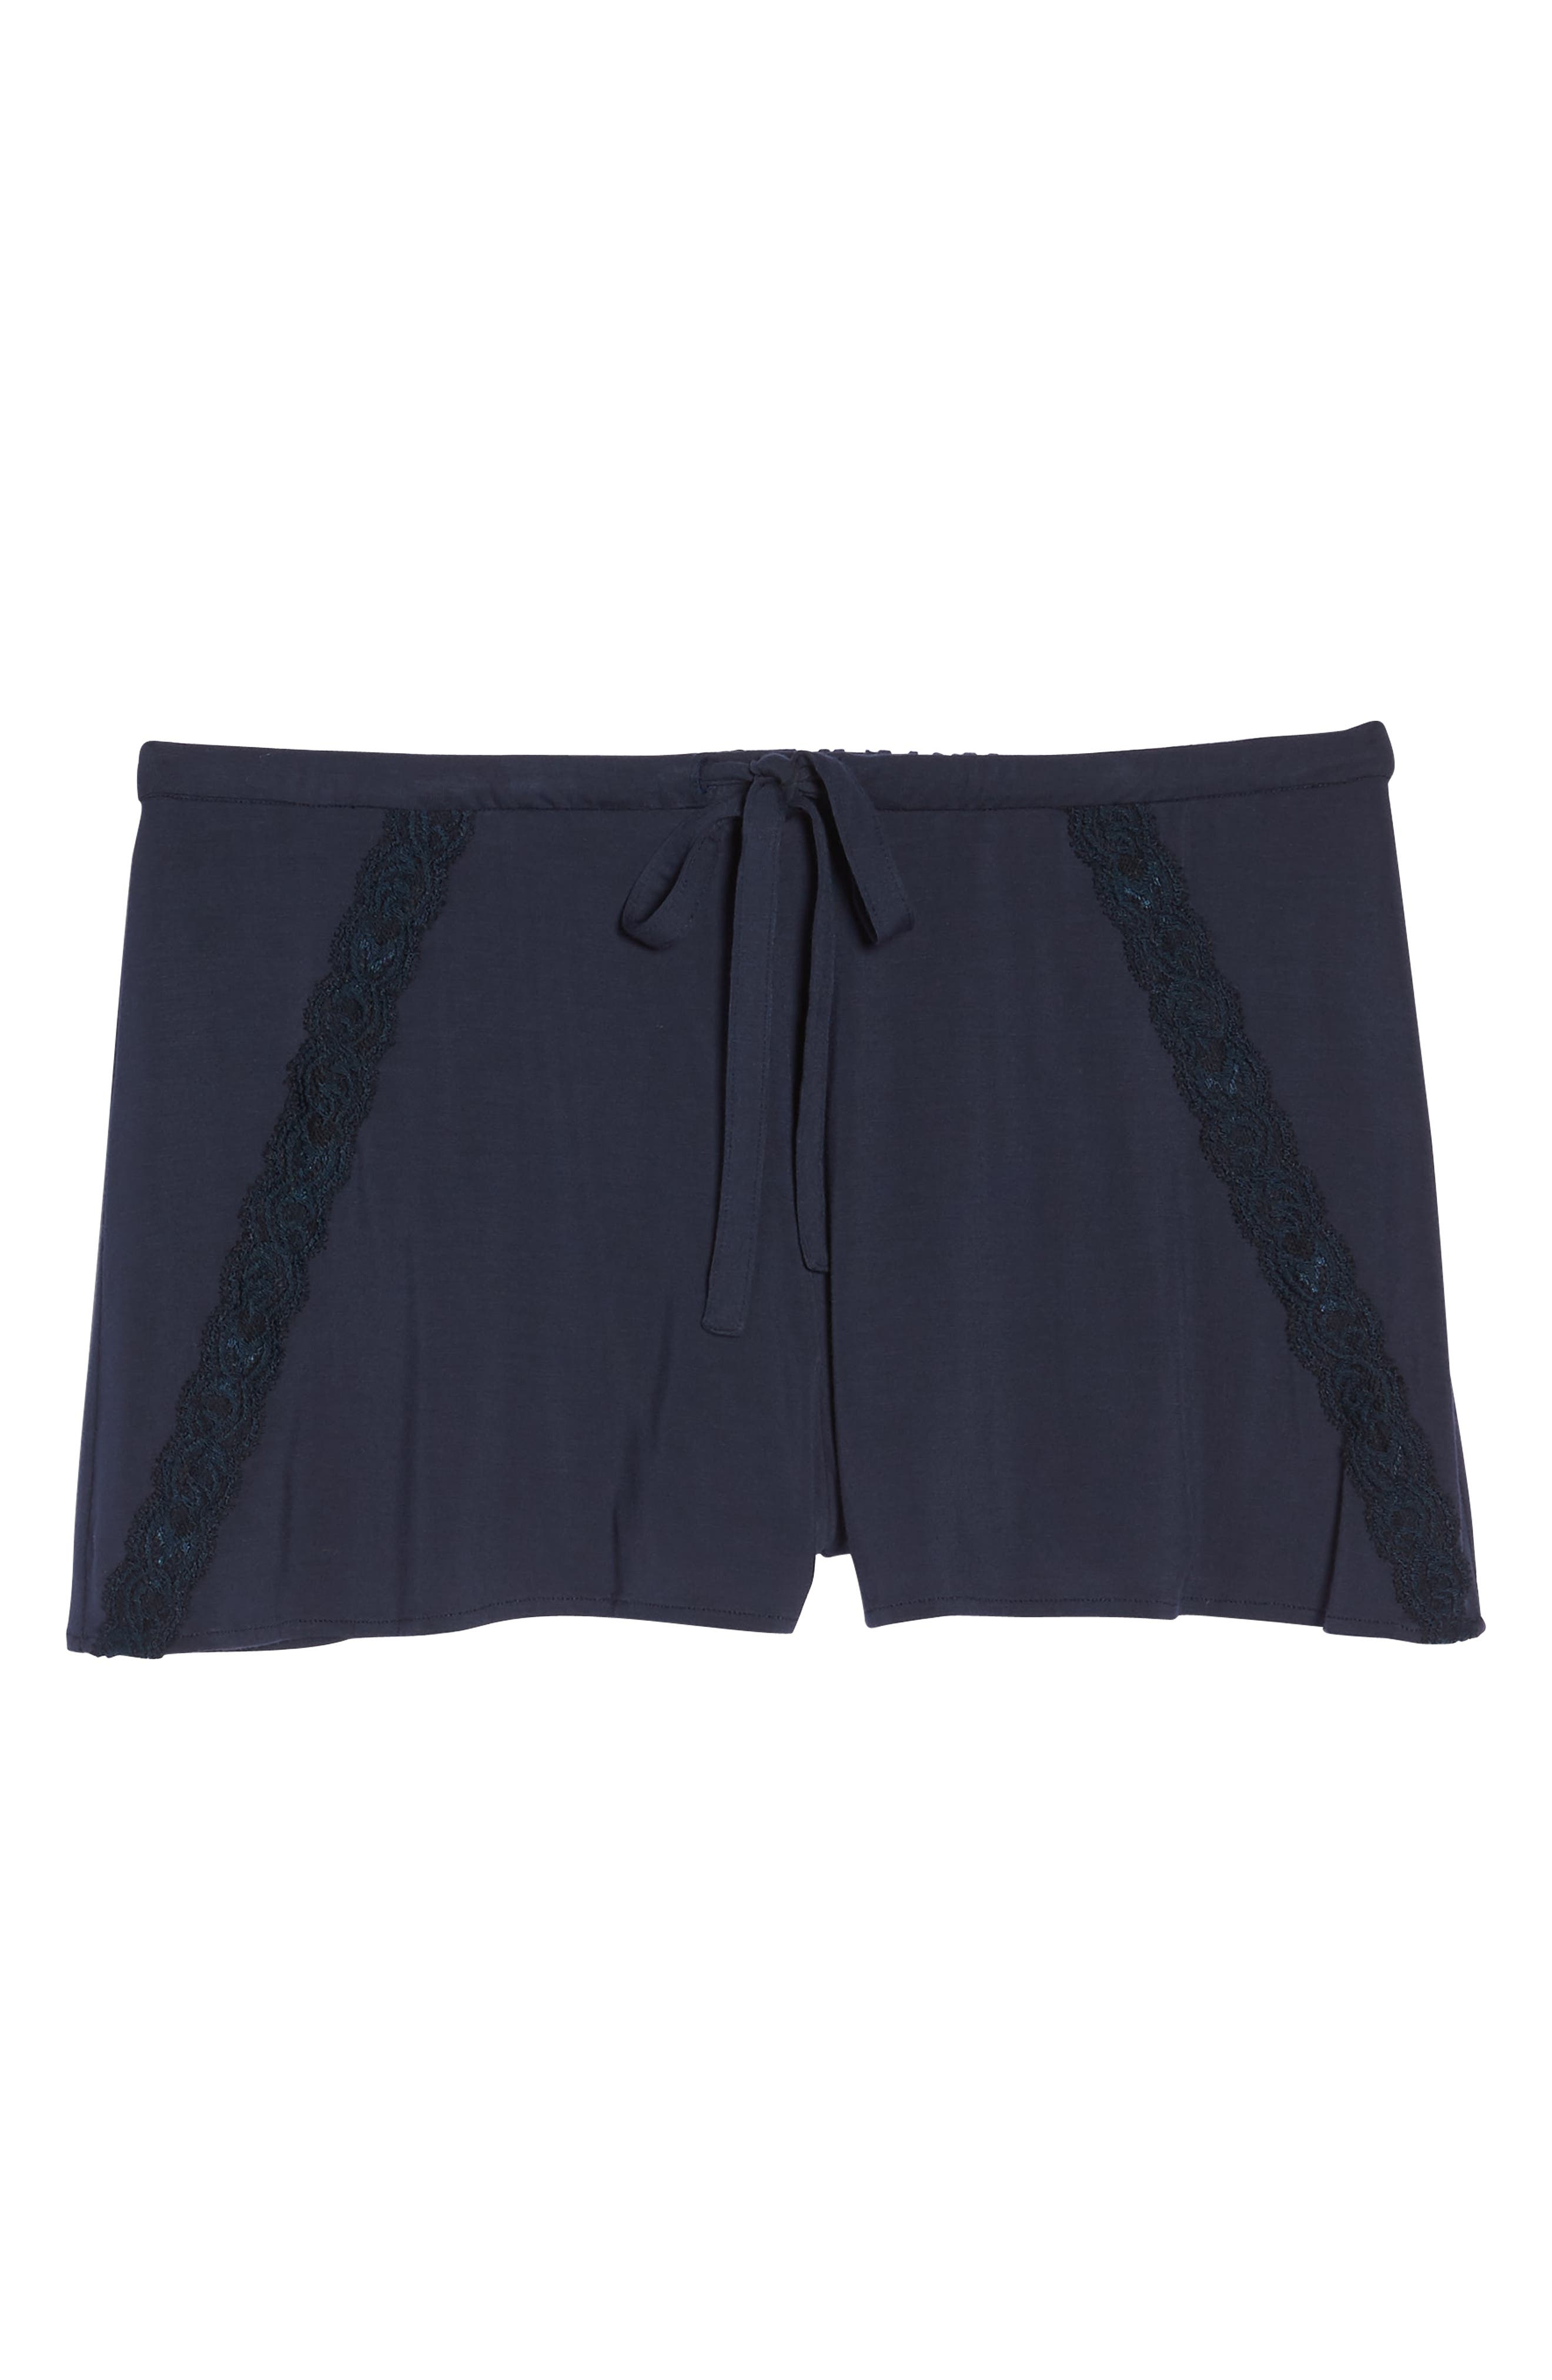 Feathers Essential Pajama Shorts,                             Alternate thumbnail 7, color,                             Night Blue